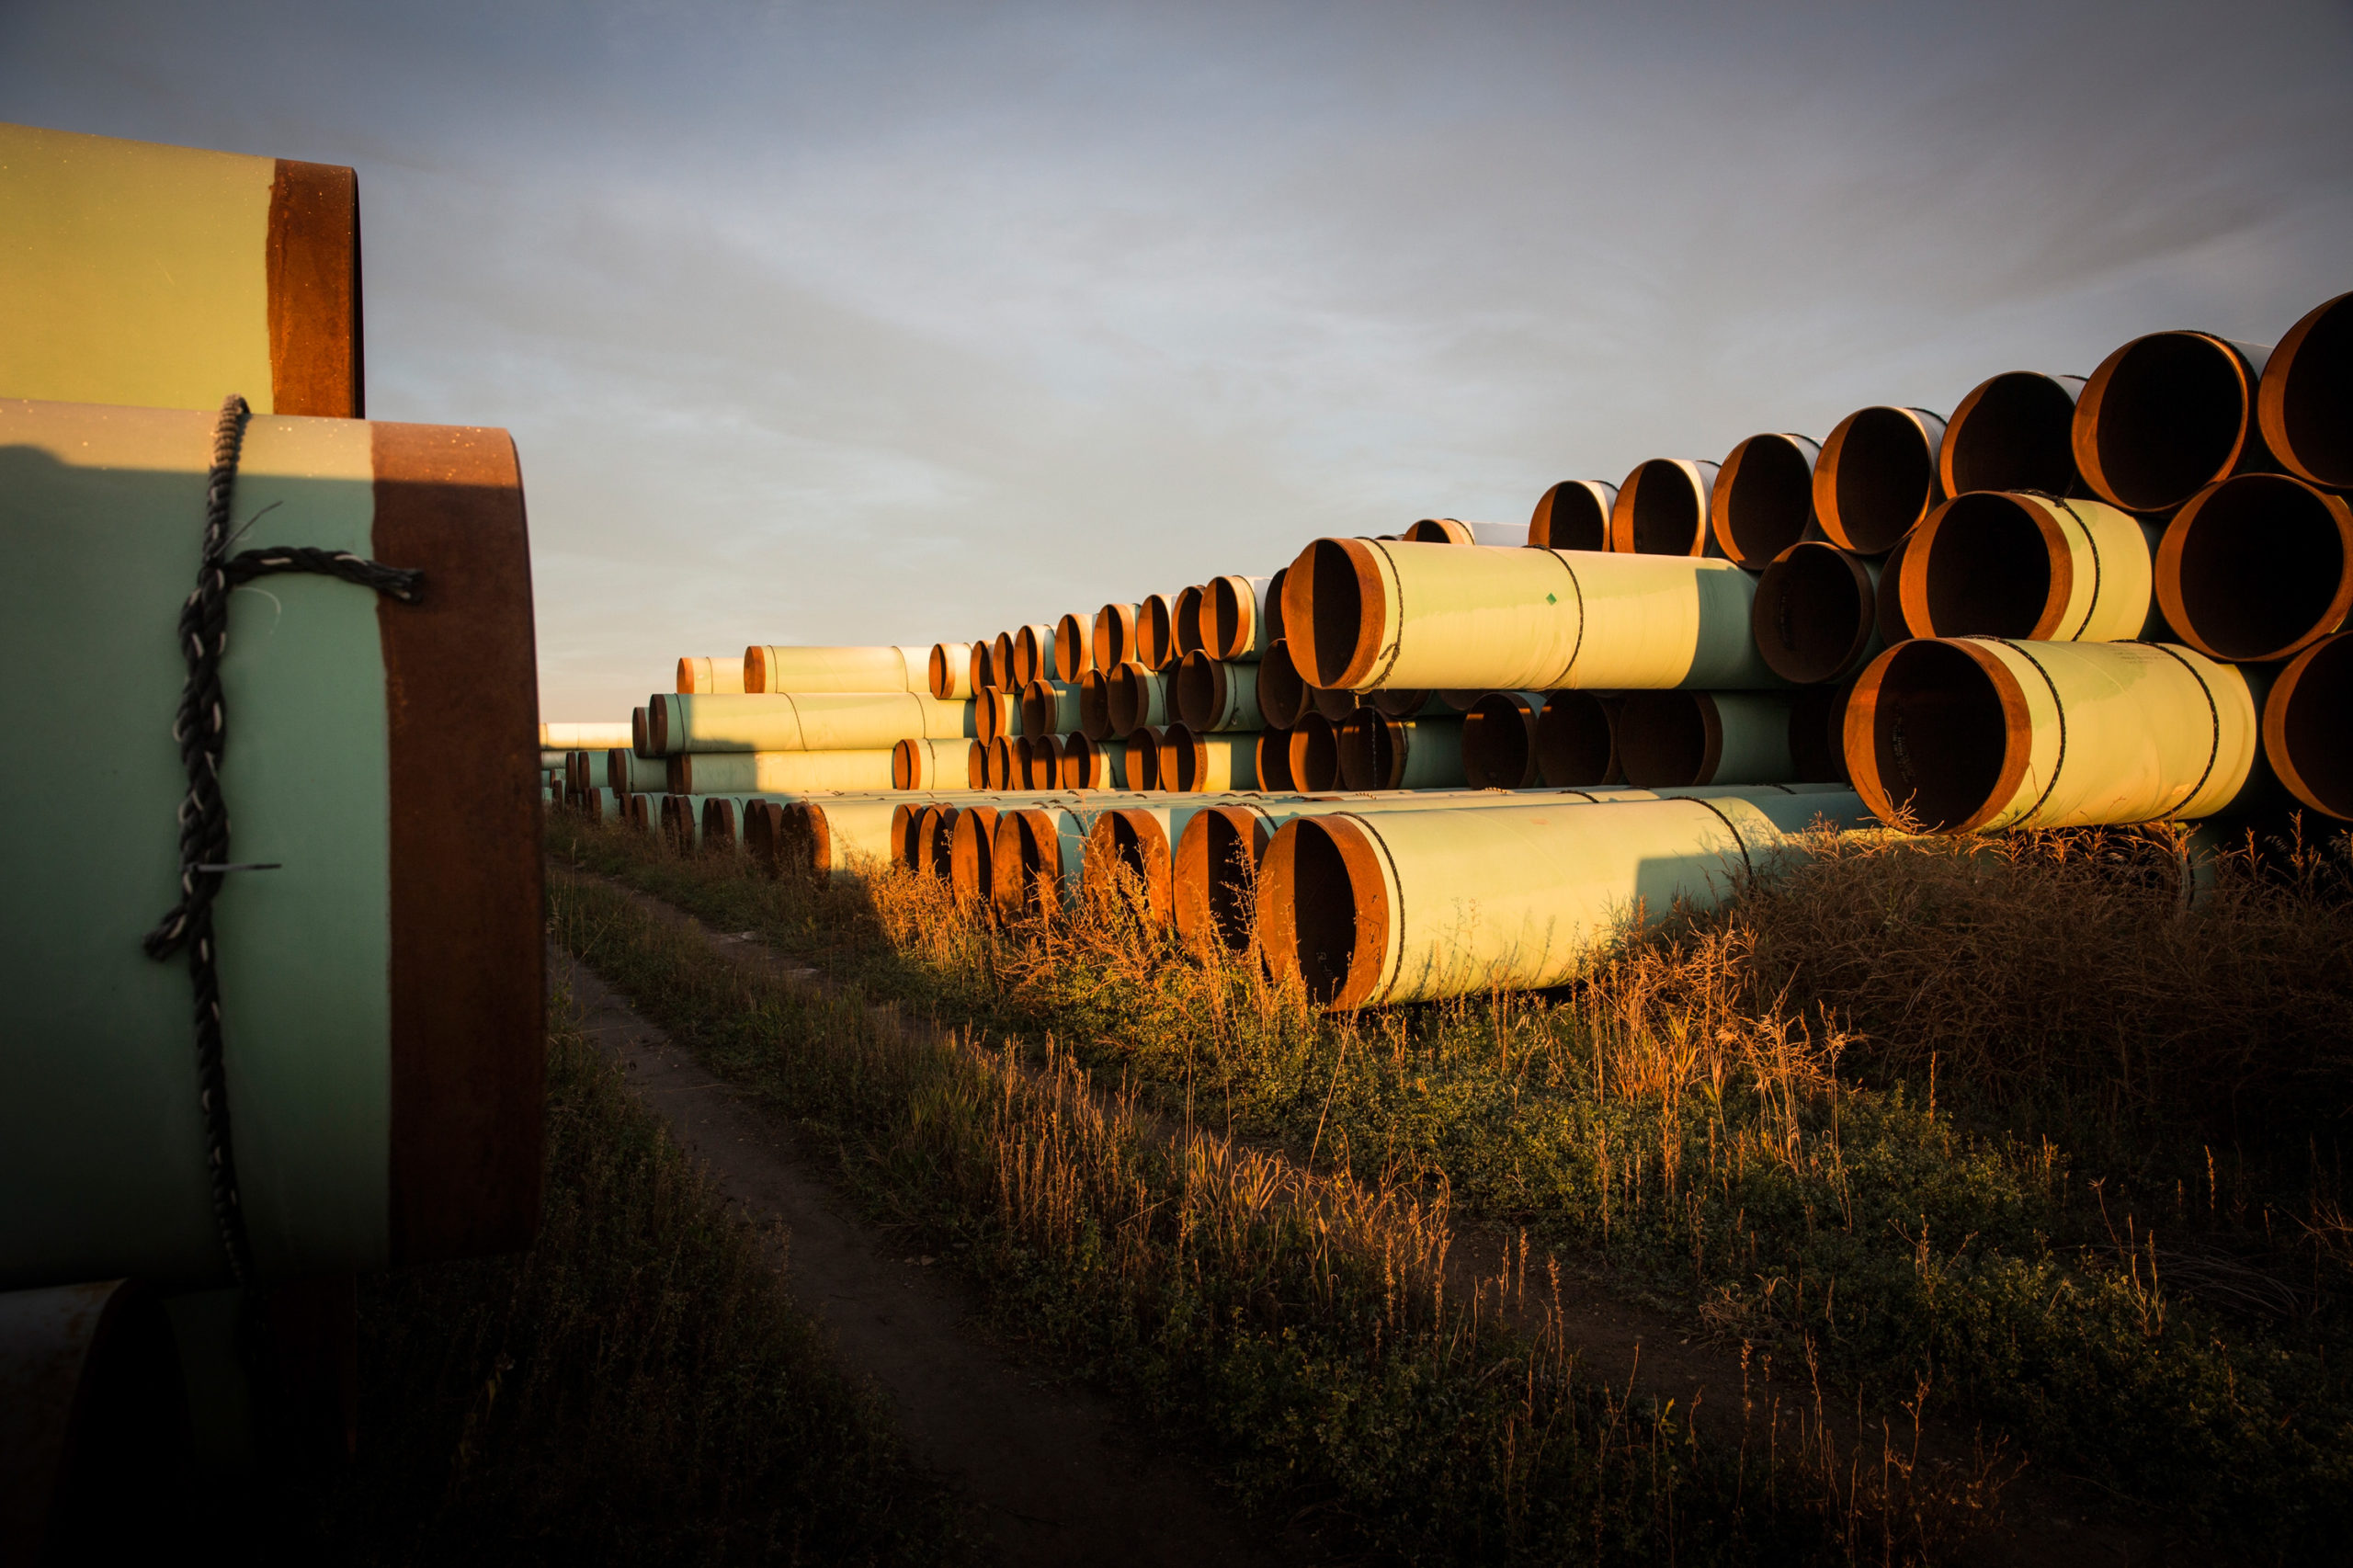 Miles of unused pipe, prepared for the proposed Keystone XL pipeline, sit in a lot in 2014 outside Gascoyne, North Dakota. (Andrew Burton/Getty Images)